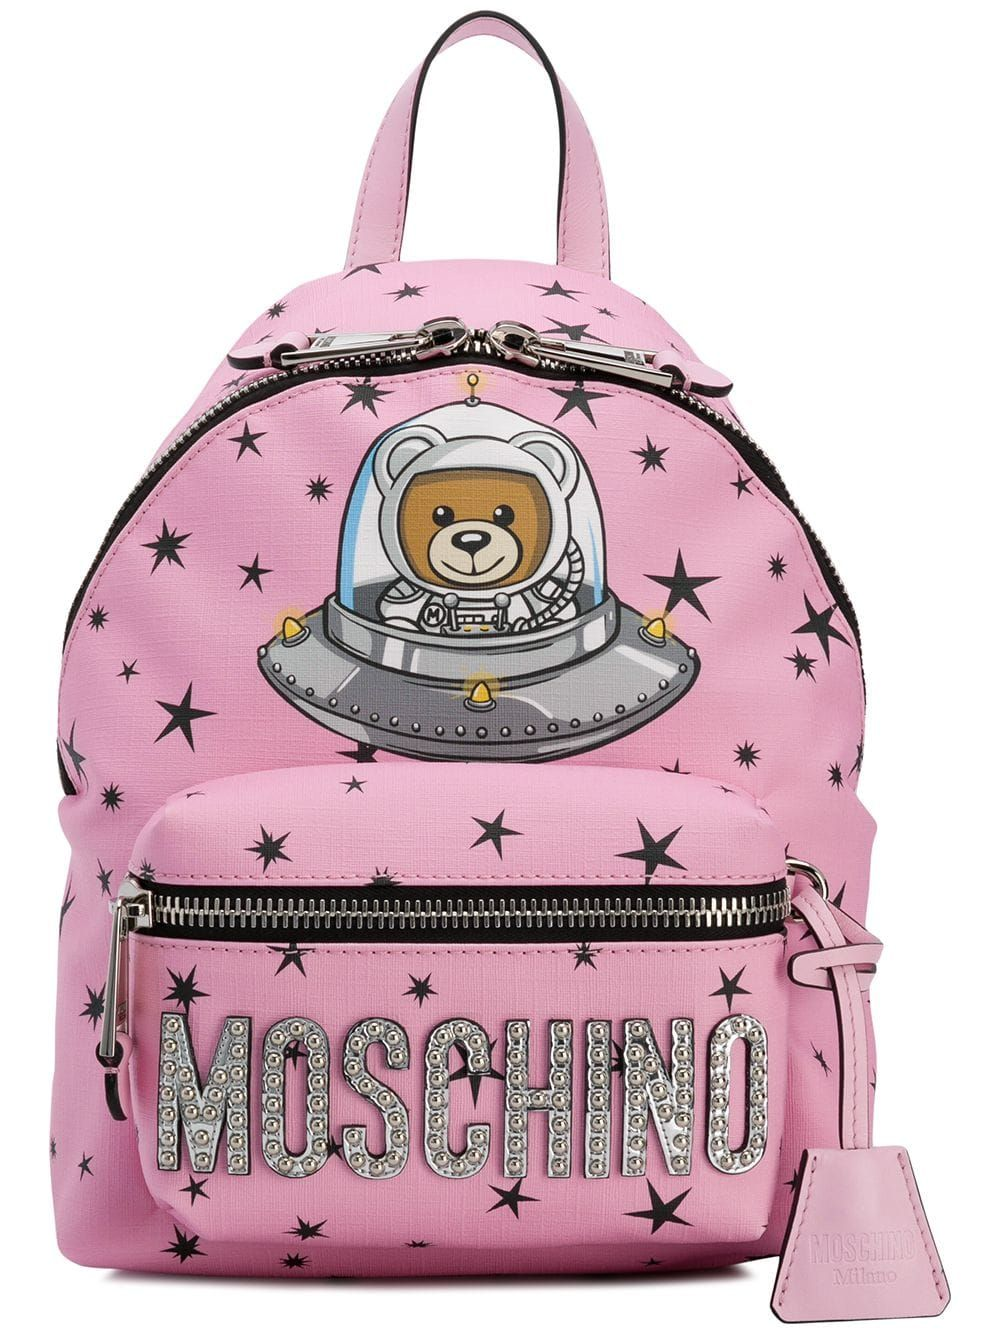 ad35f71af11 Moschino space teddy bear backpack - Pink Italy Fashion, Fall 2018, Runway  Models,